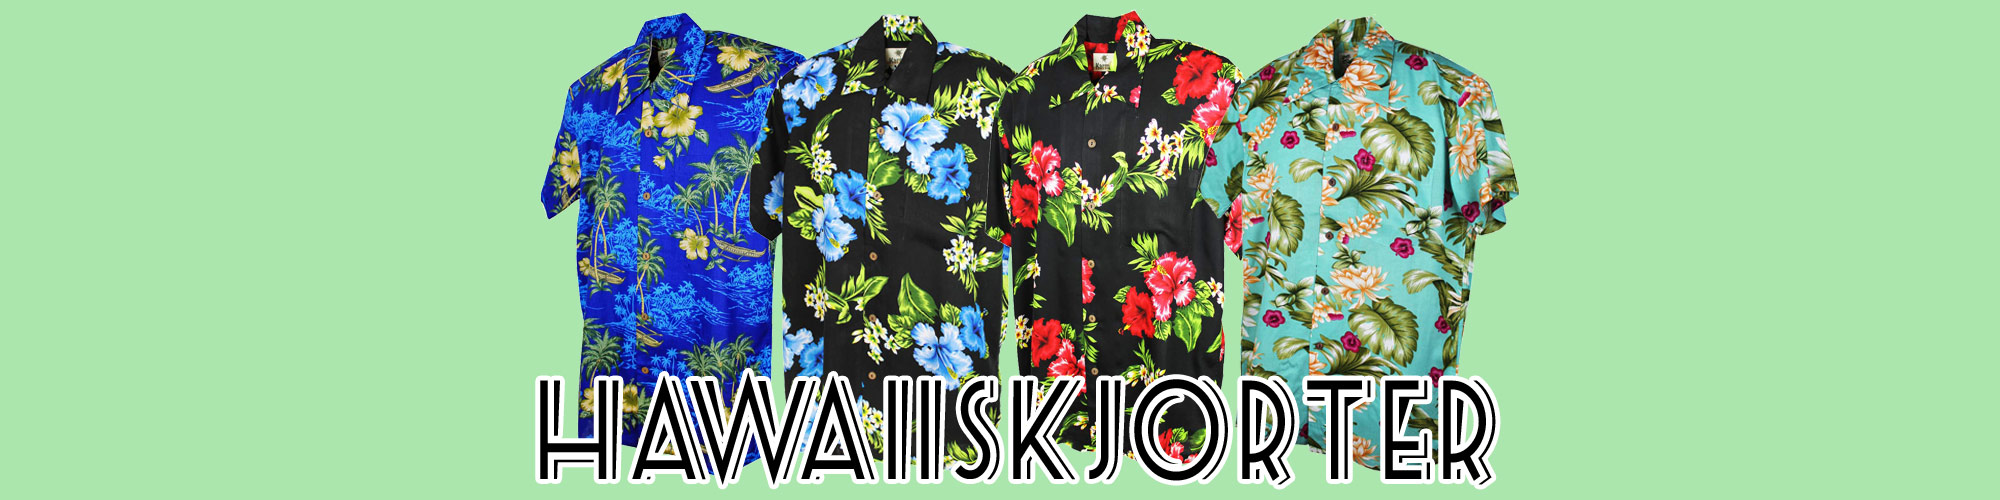 hawaii_skjorter